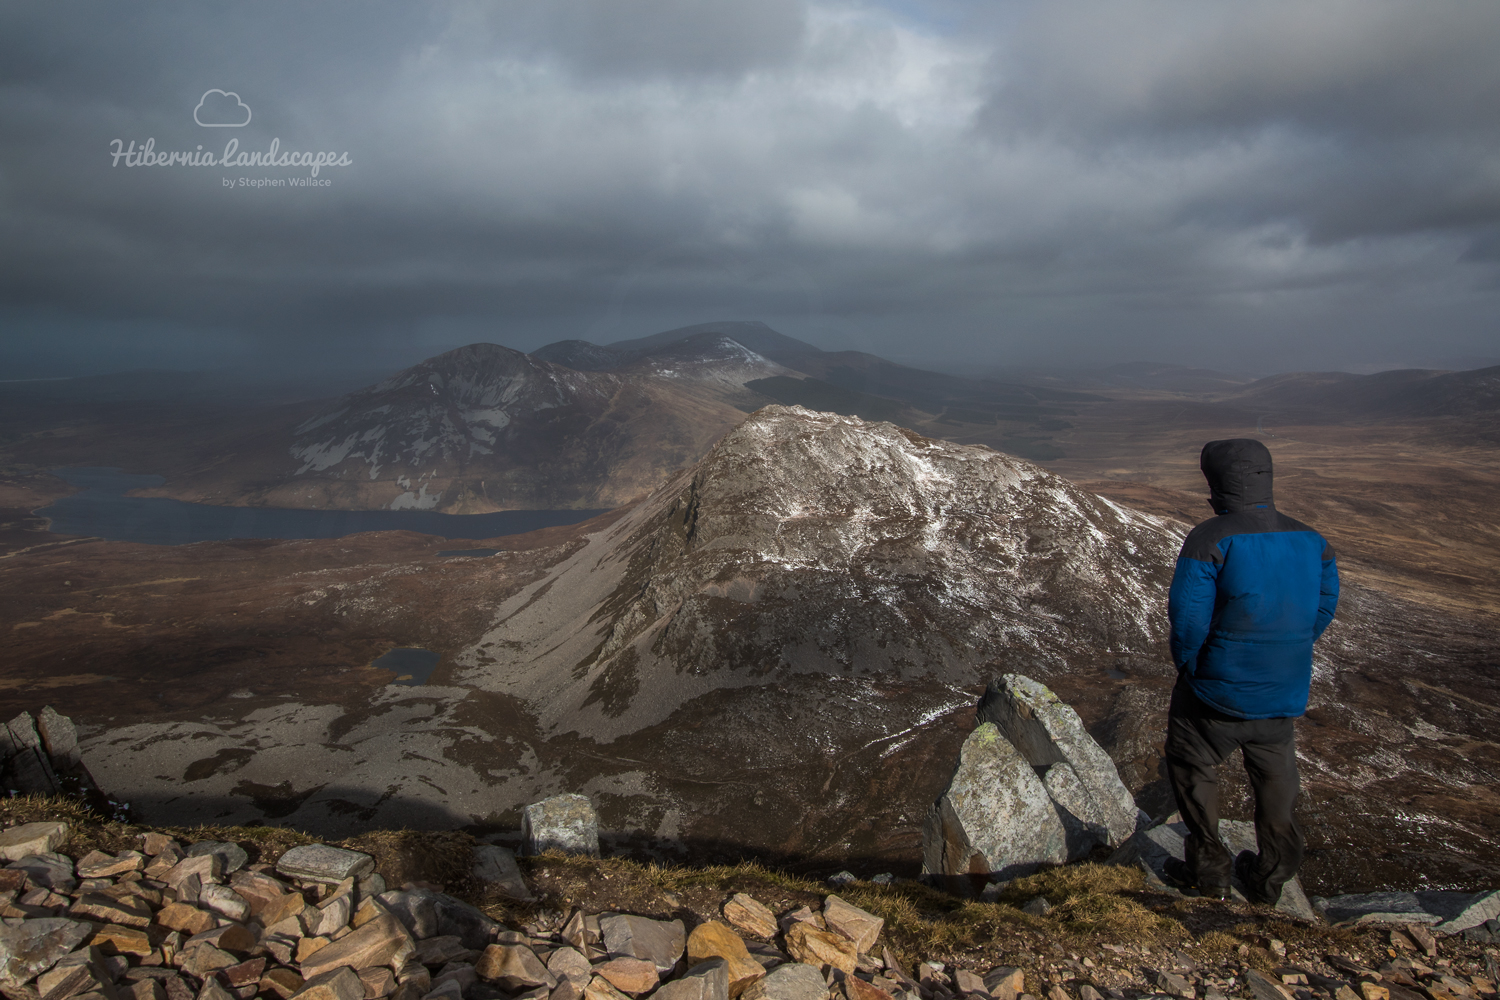 Surveying the Derryveagh mountains